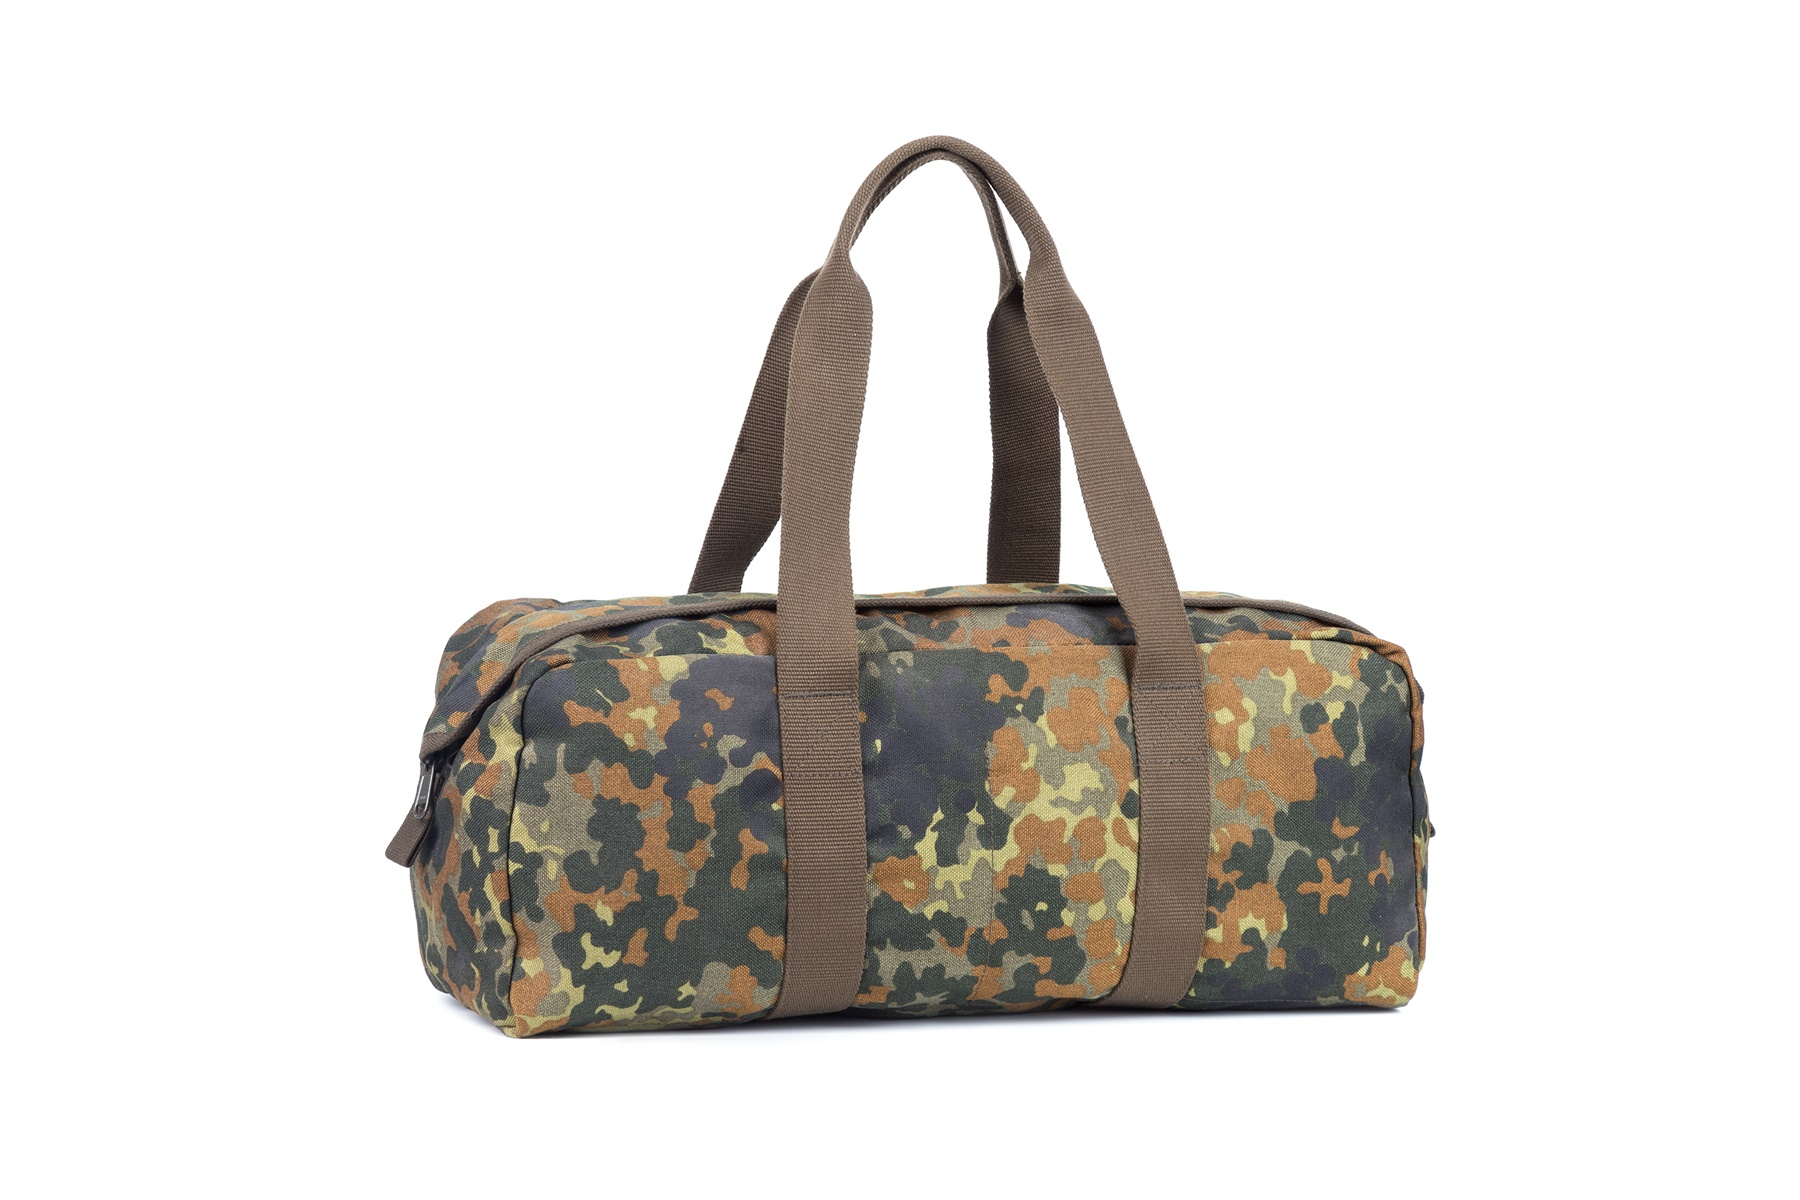 video-custom army tactical bag inquire now for trip-GF bags-img-1